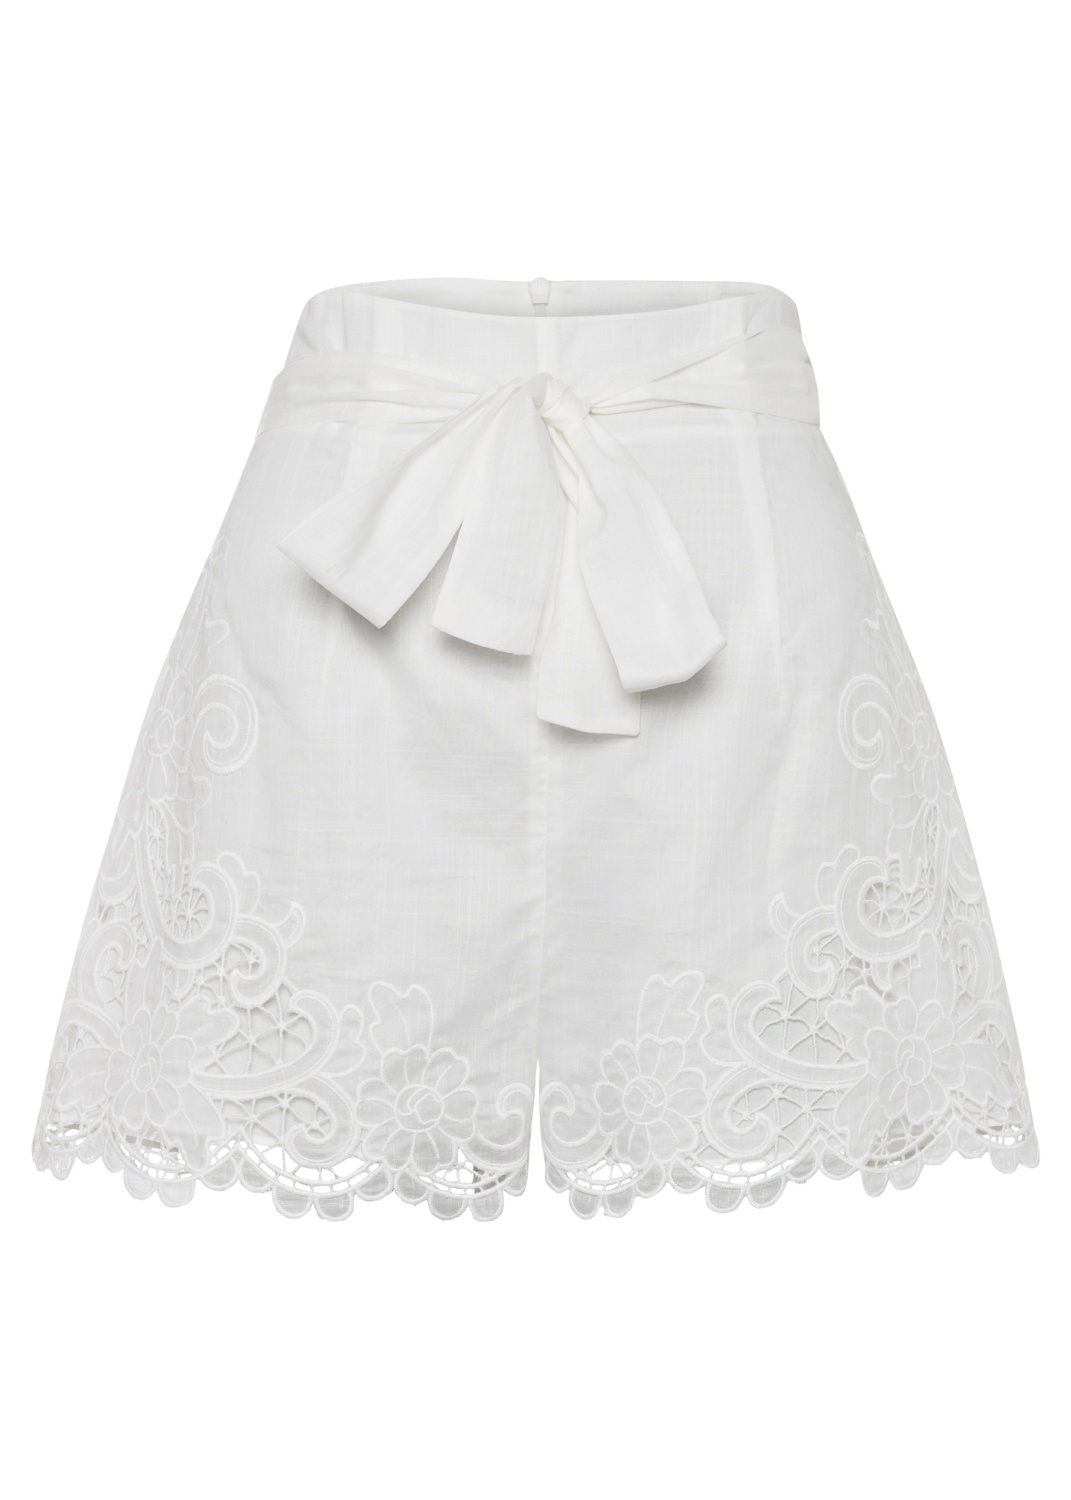 Lulu Scallop Shorts image number 0